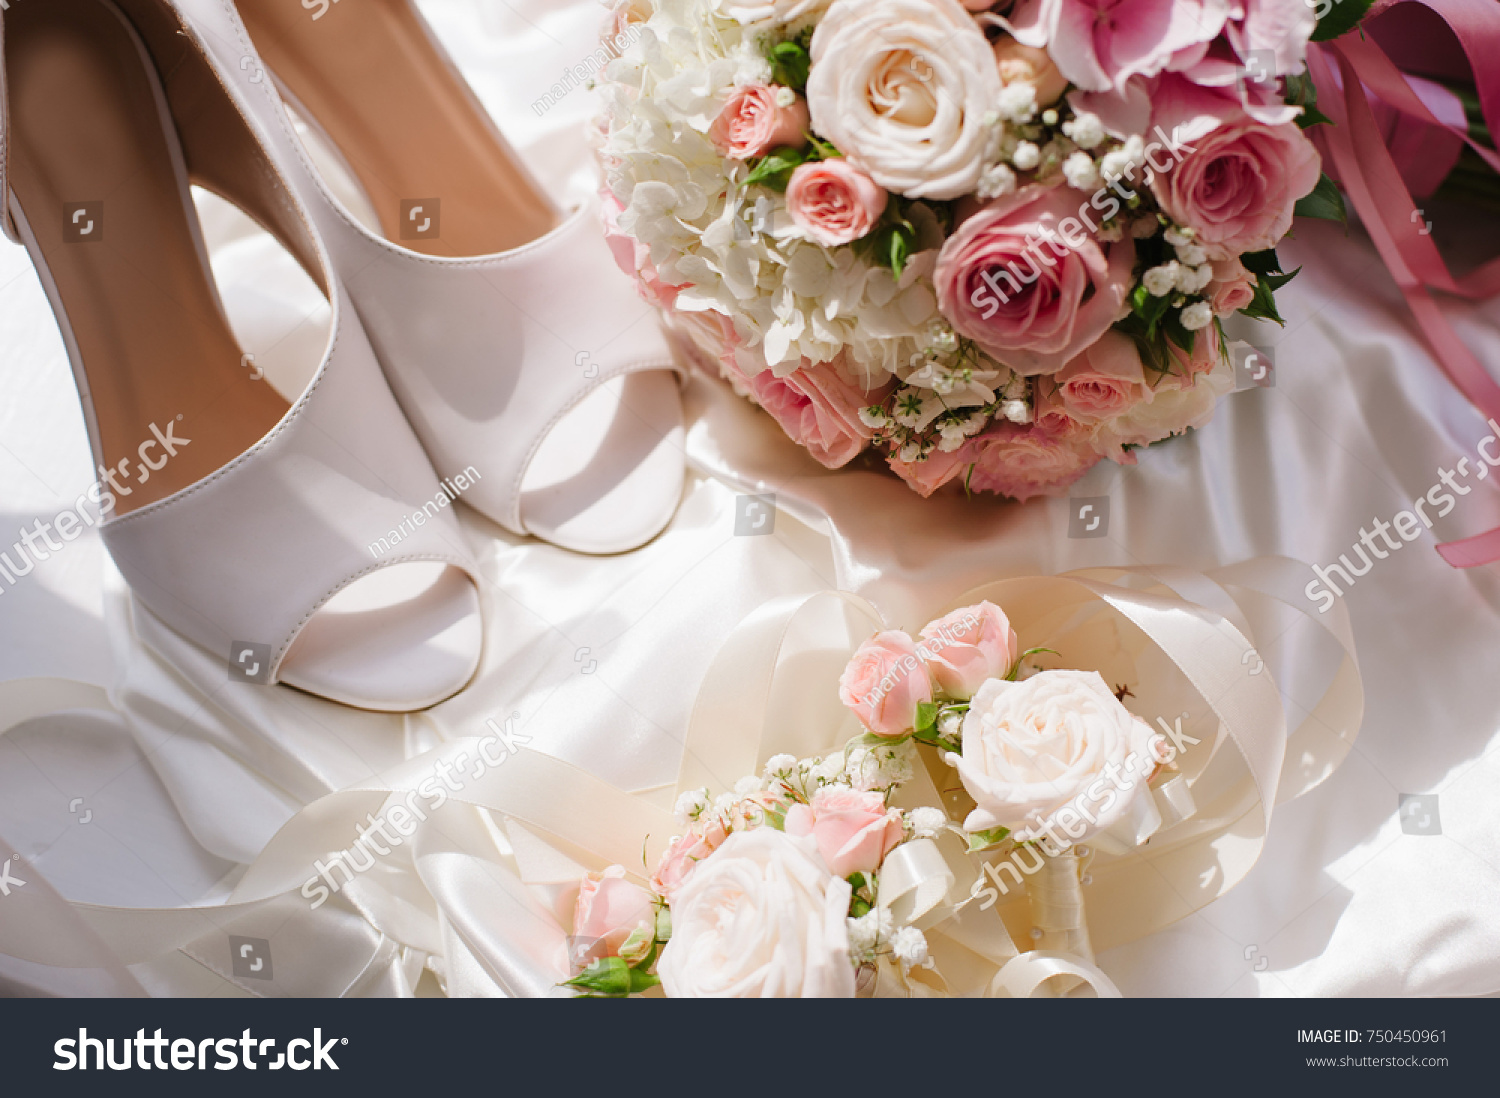 Beautiful Bouquet Of Flowers Photo Flower Wallpapers Wedding The Bride